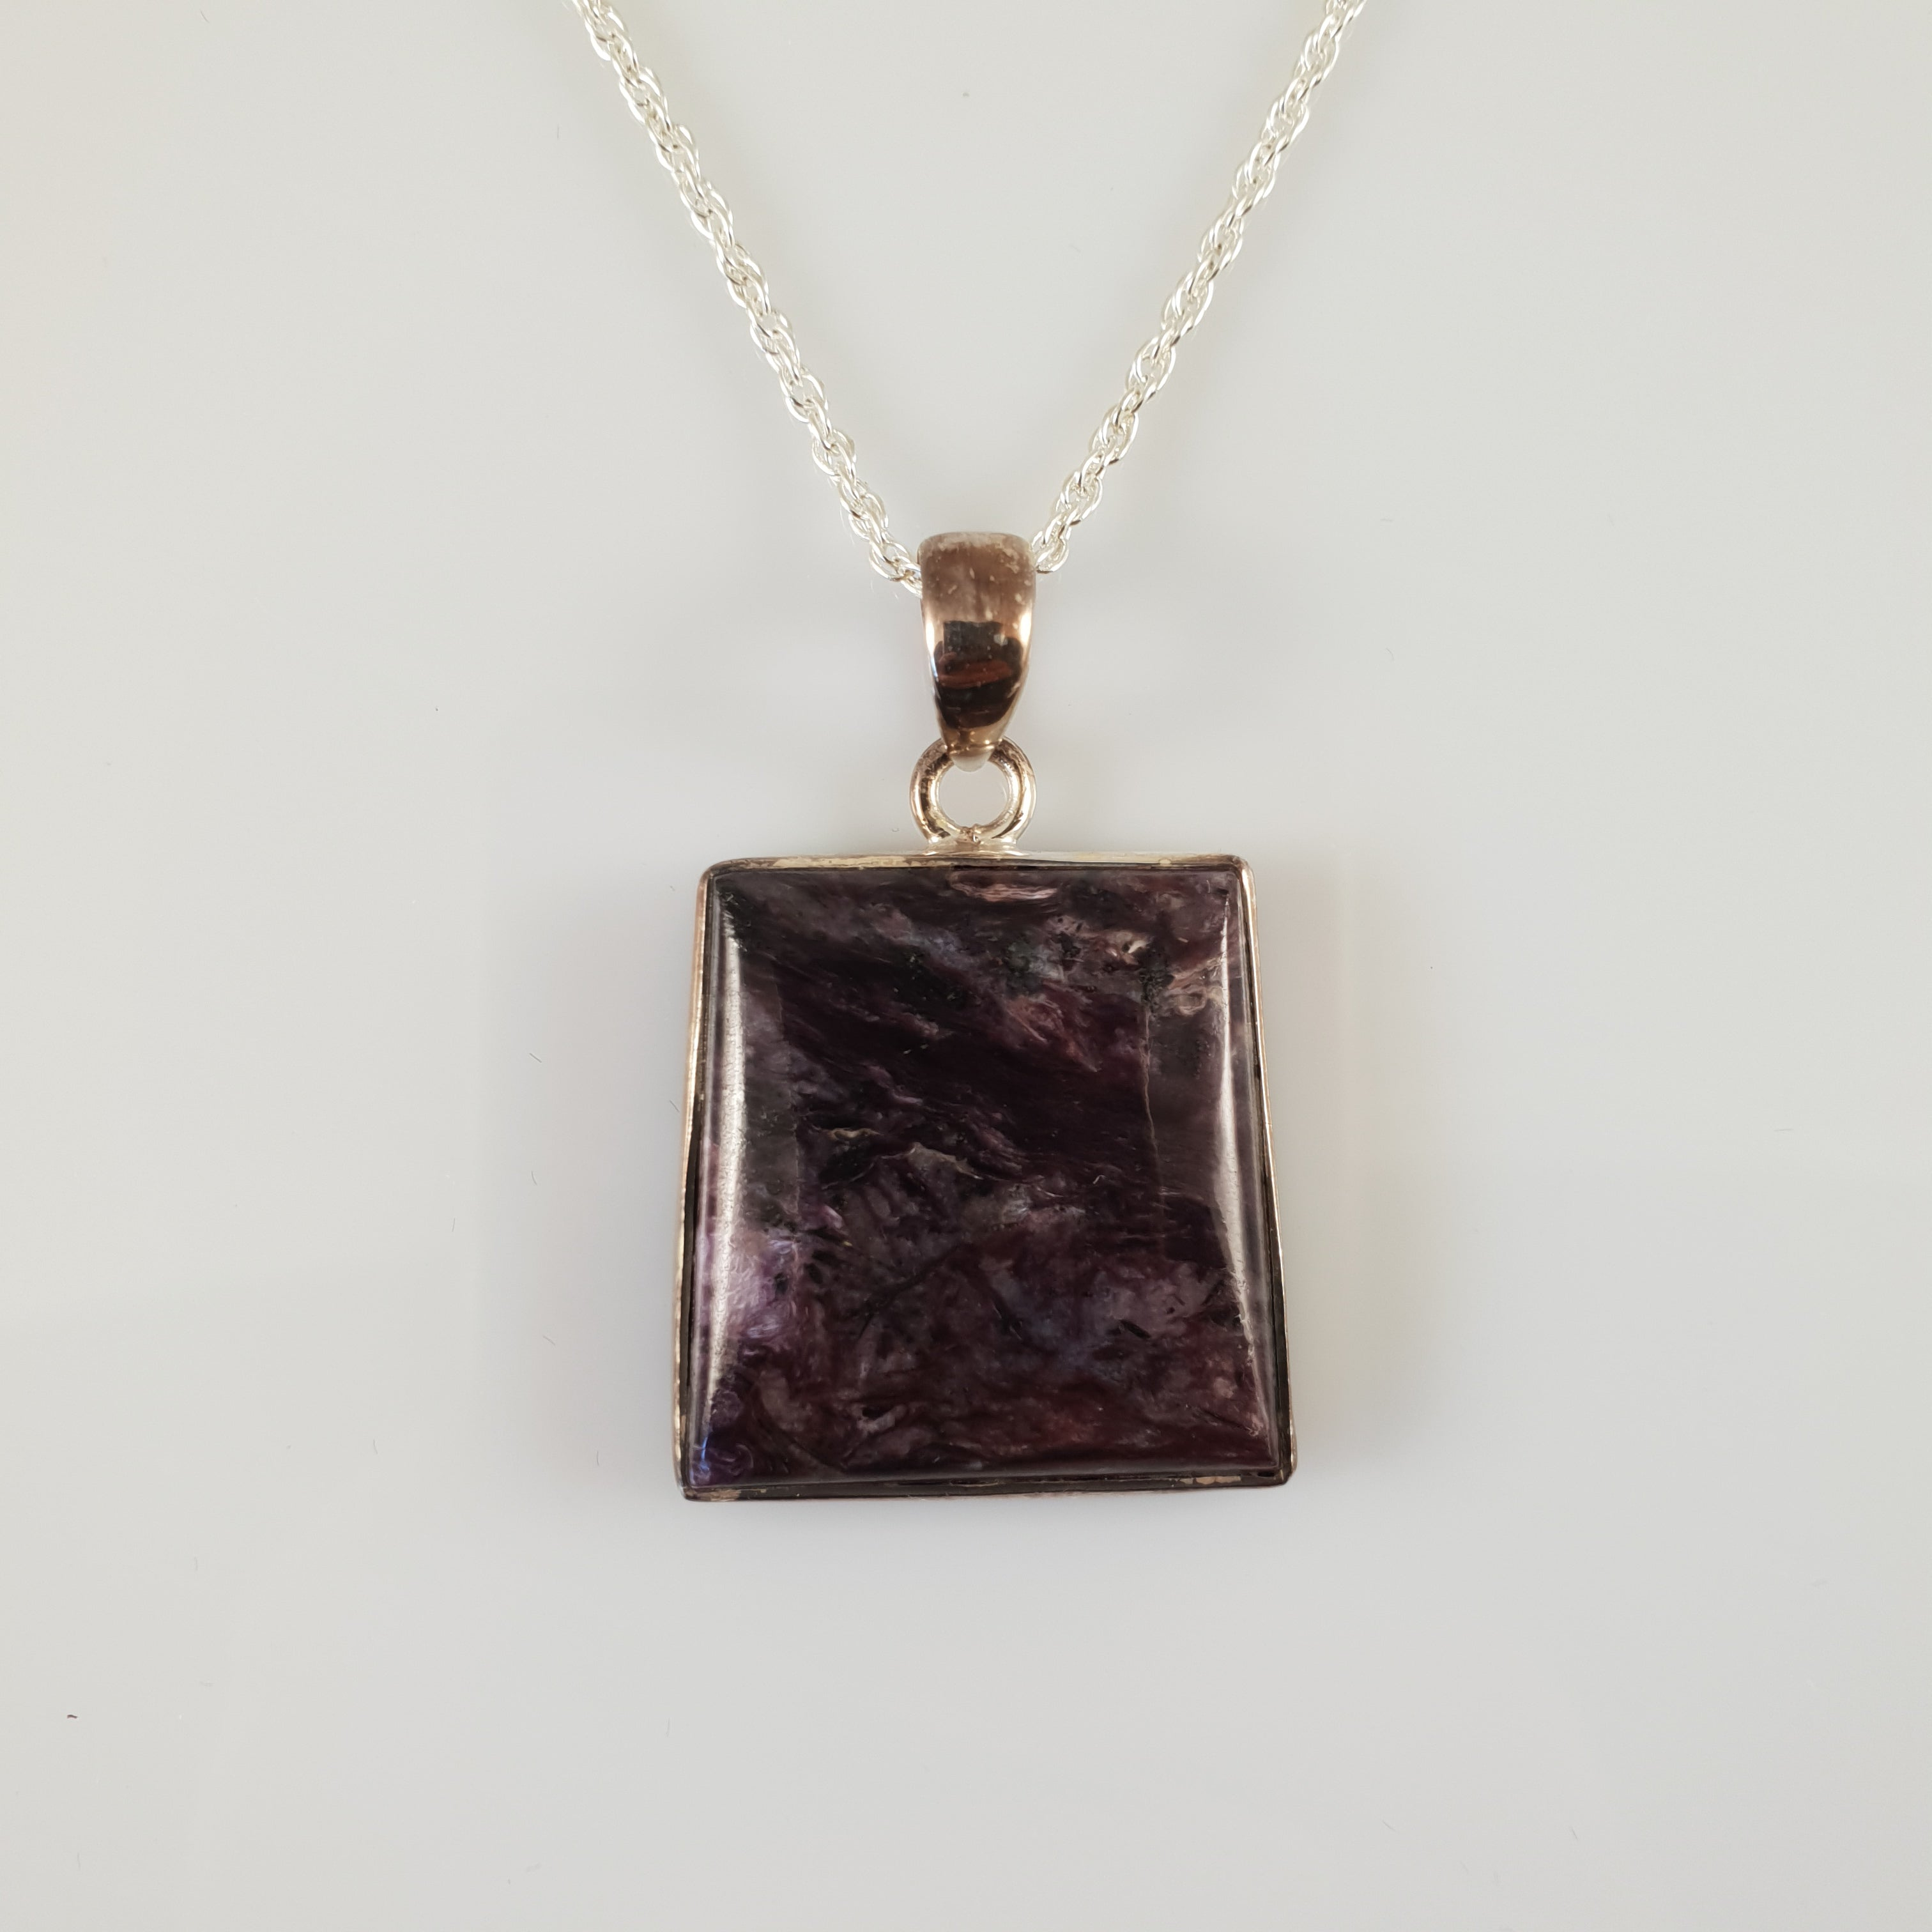 Square Charoite 925 Stirling Silver Pendant - Rivendell Shop NZ